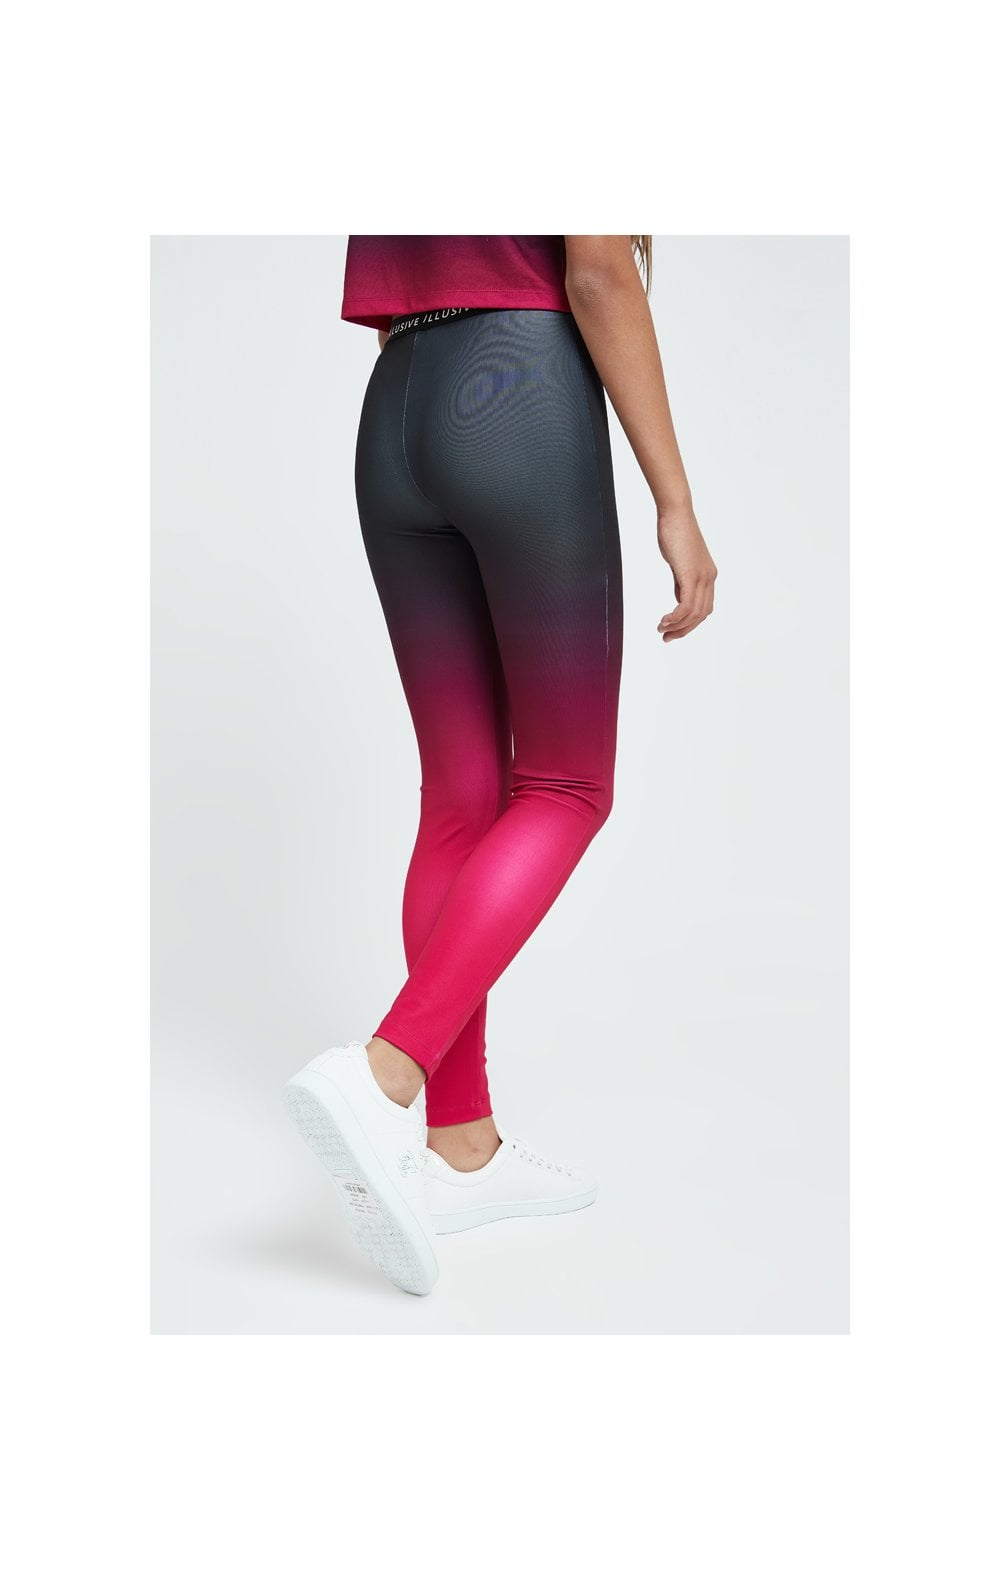 Illusive London Fade Leggings - Pink & Black (3)